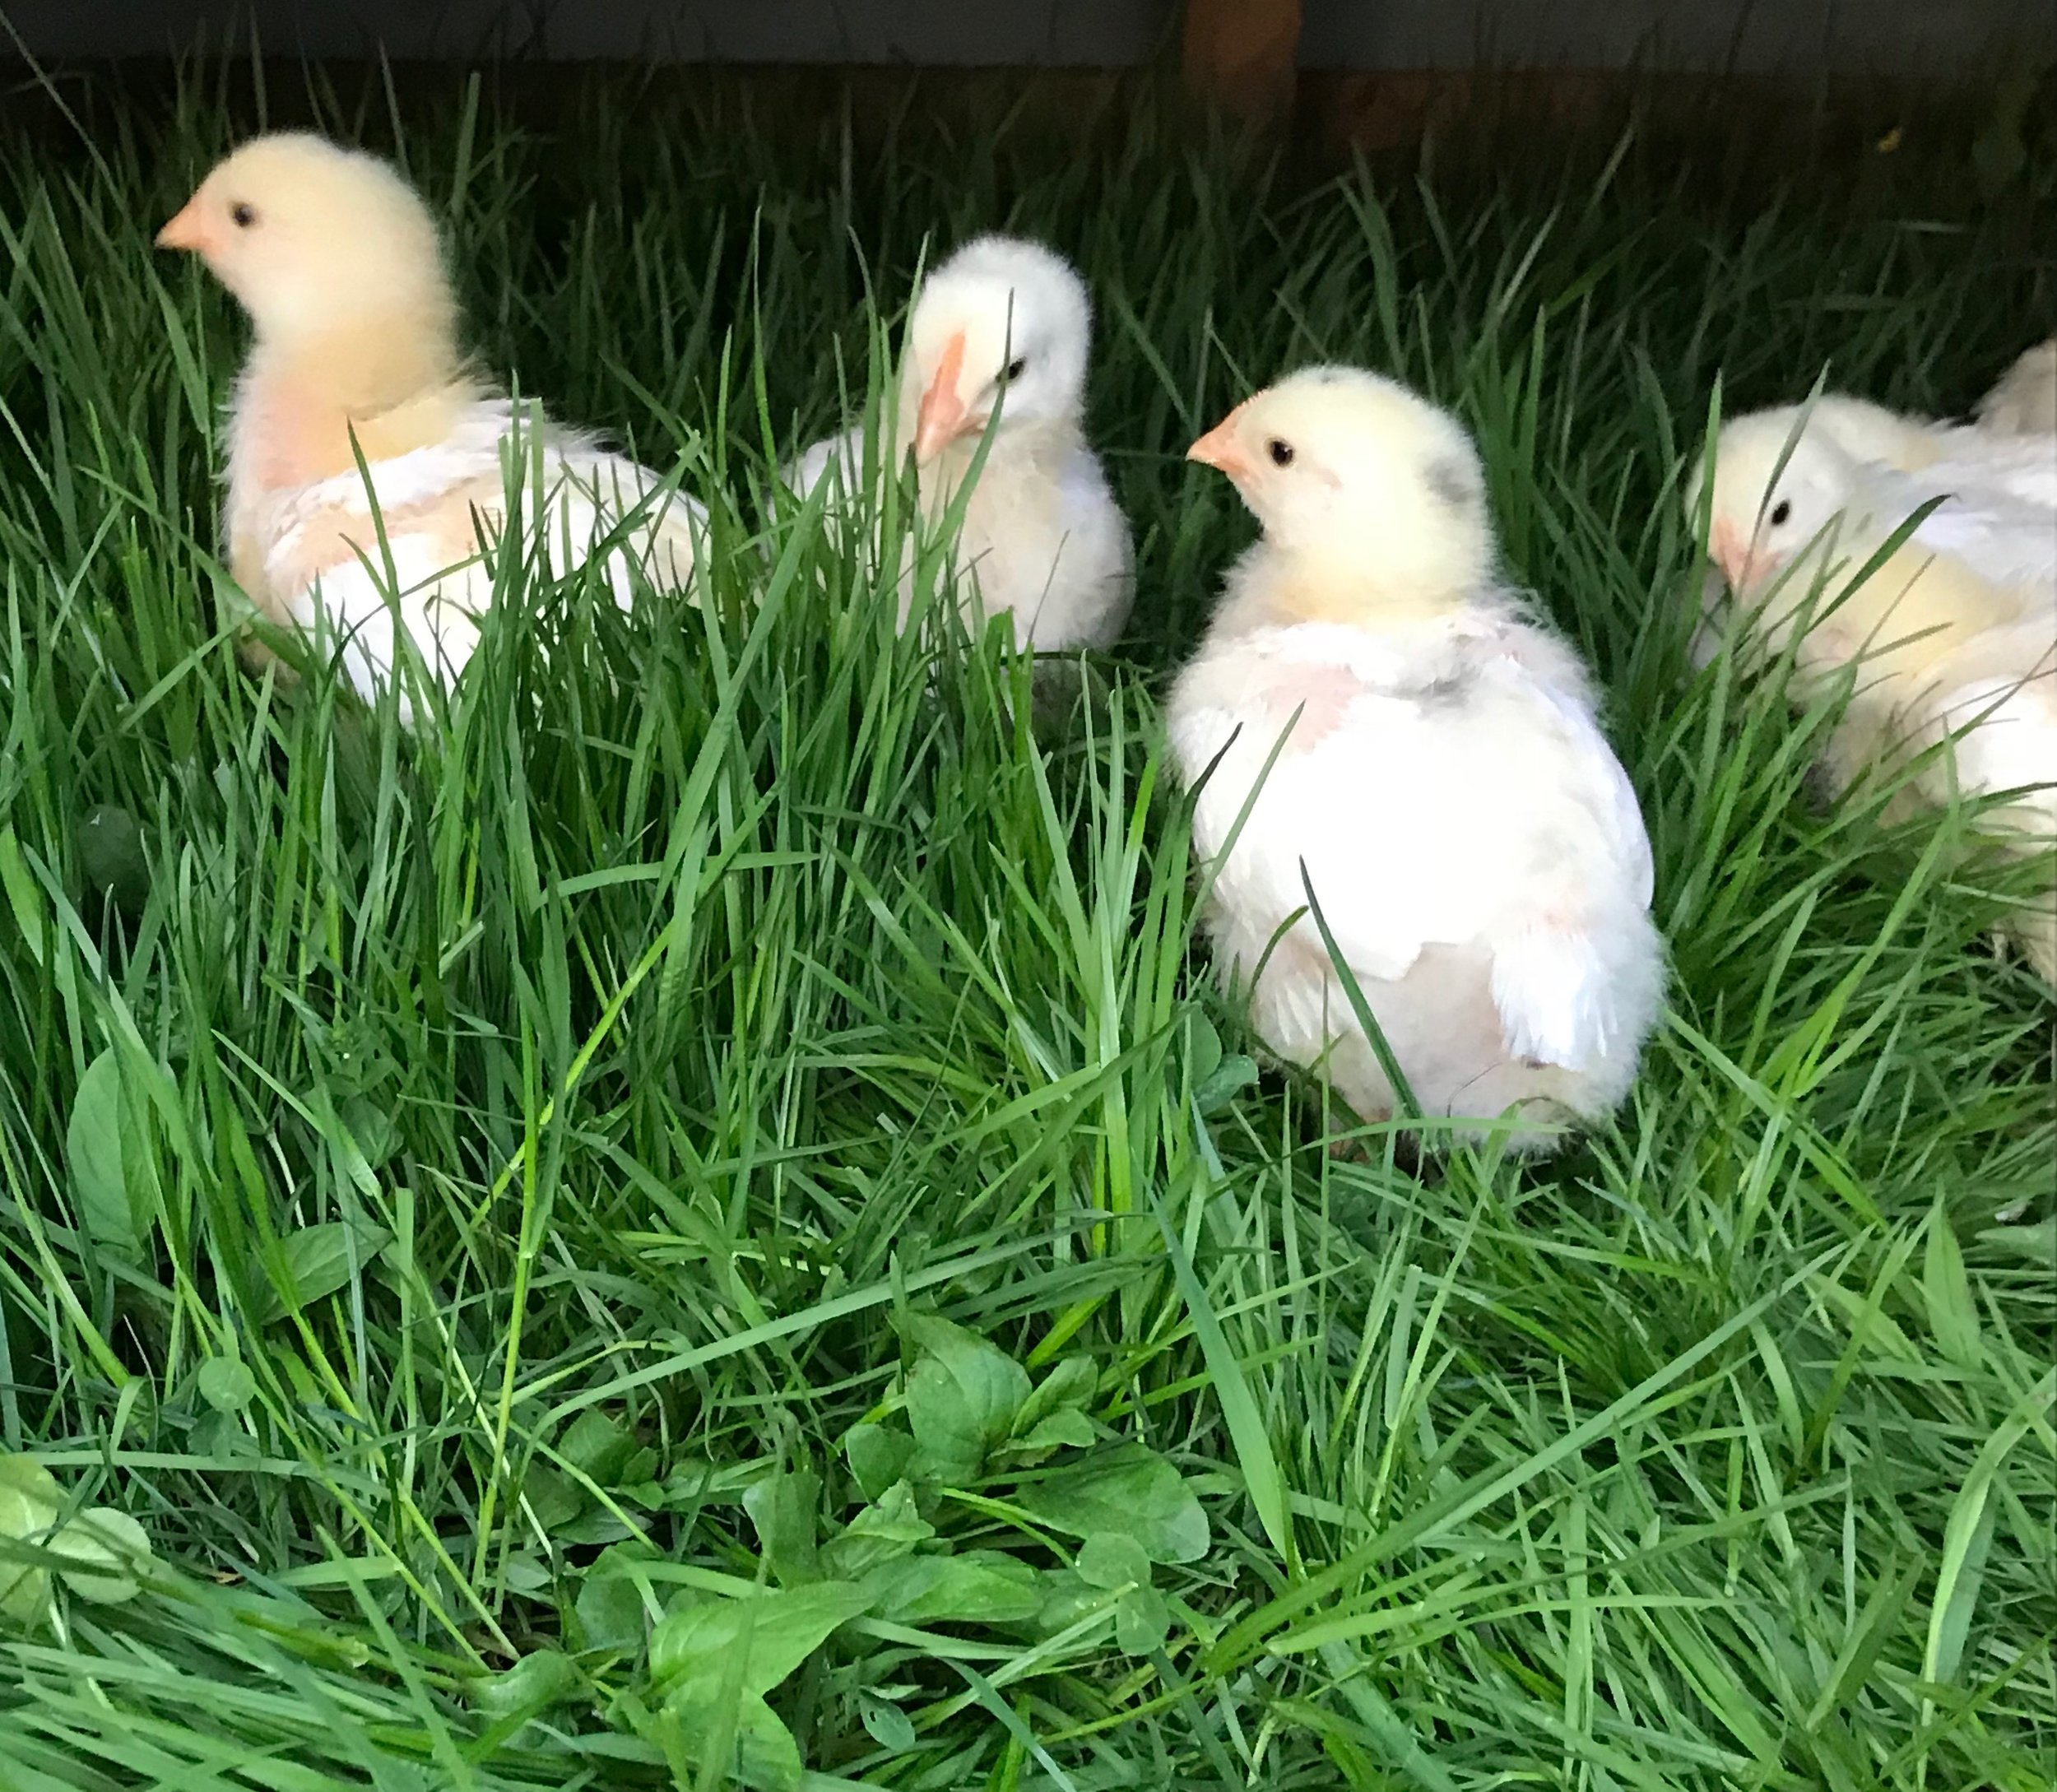 sOME CHICKS ENJOYING THEIR FIRST DAYS OUT ON PASTURE